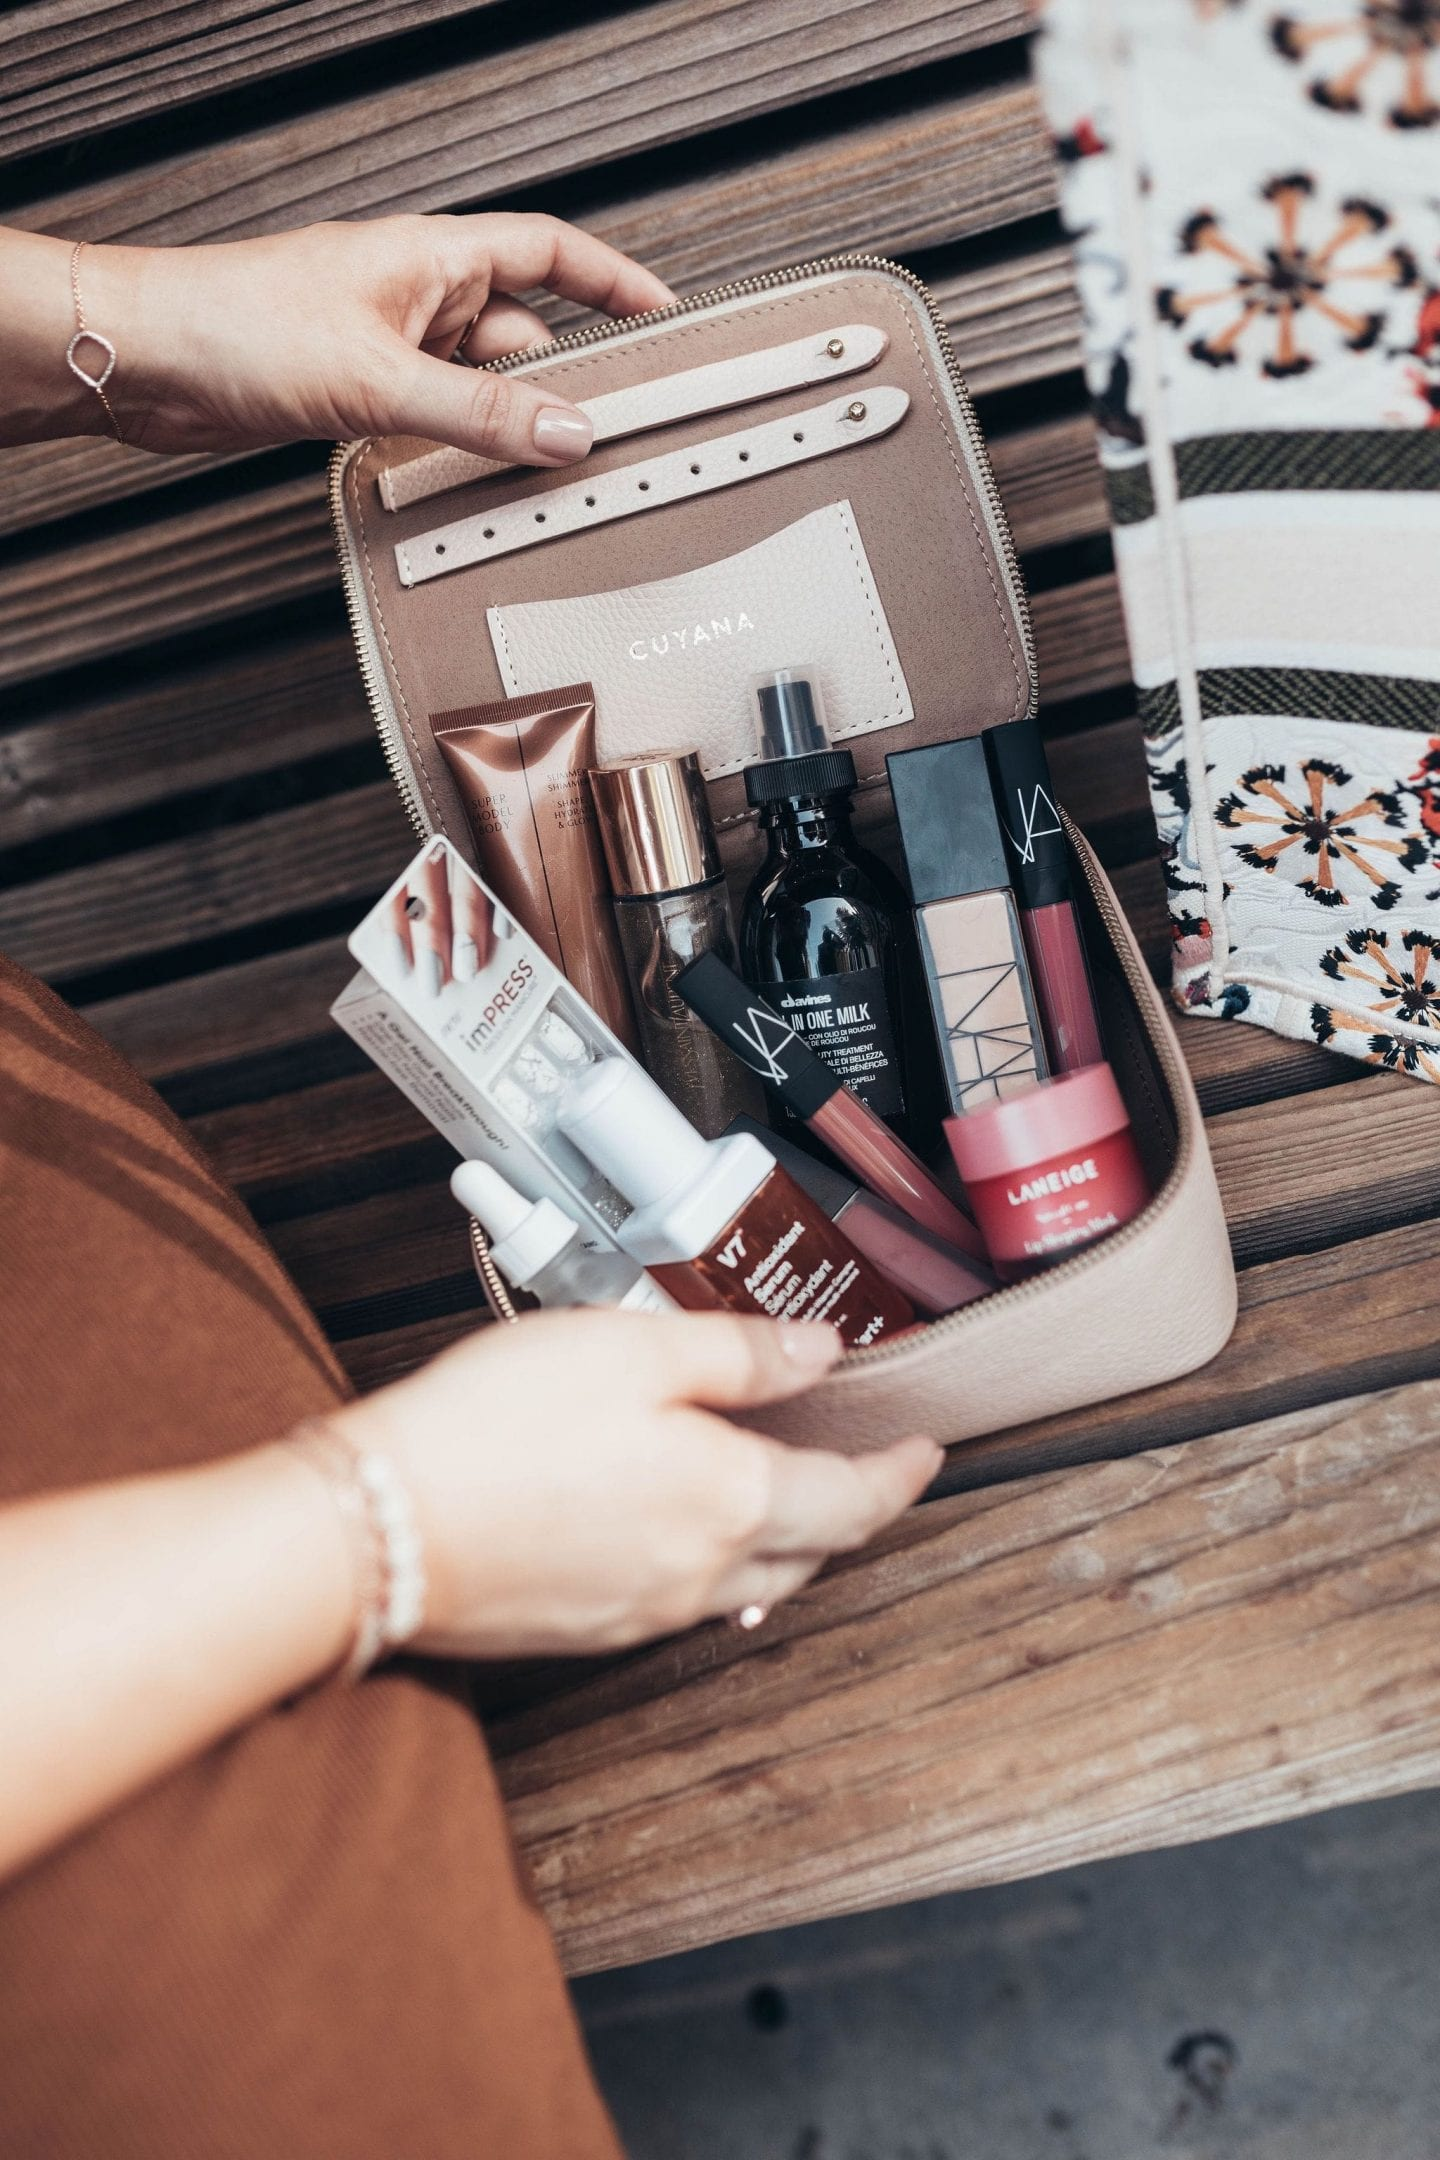 The Ultimate Walmart Fall Beauty Roundup I beauty blog I Walmart beauty I via justaddglam.com | The Ultimate Walmart Fall Beauty Products Roundup by popular San Francisco beauty blog, Just Add Glam: image of a woman opening her makeup bag.